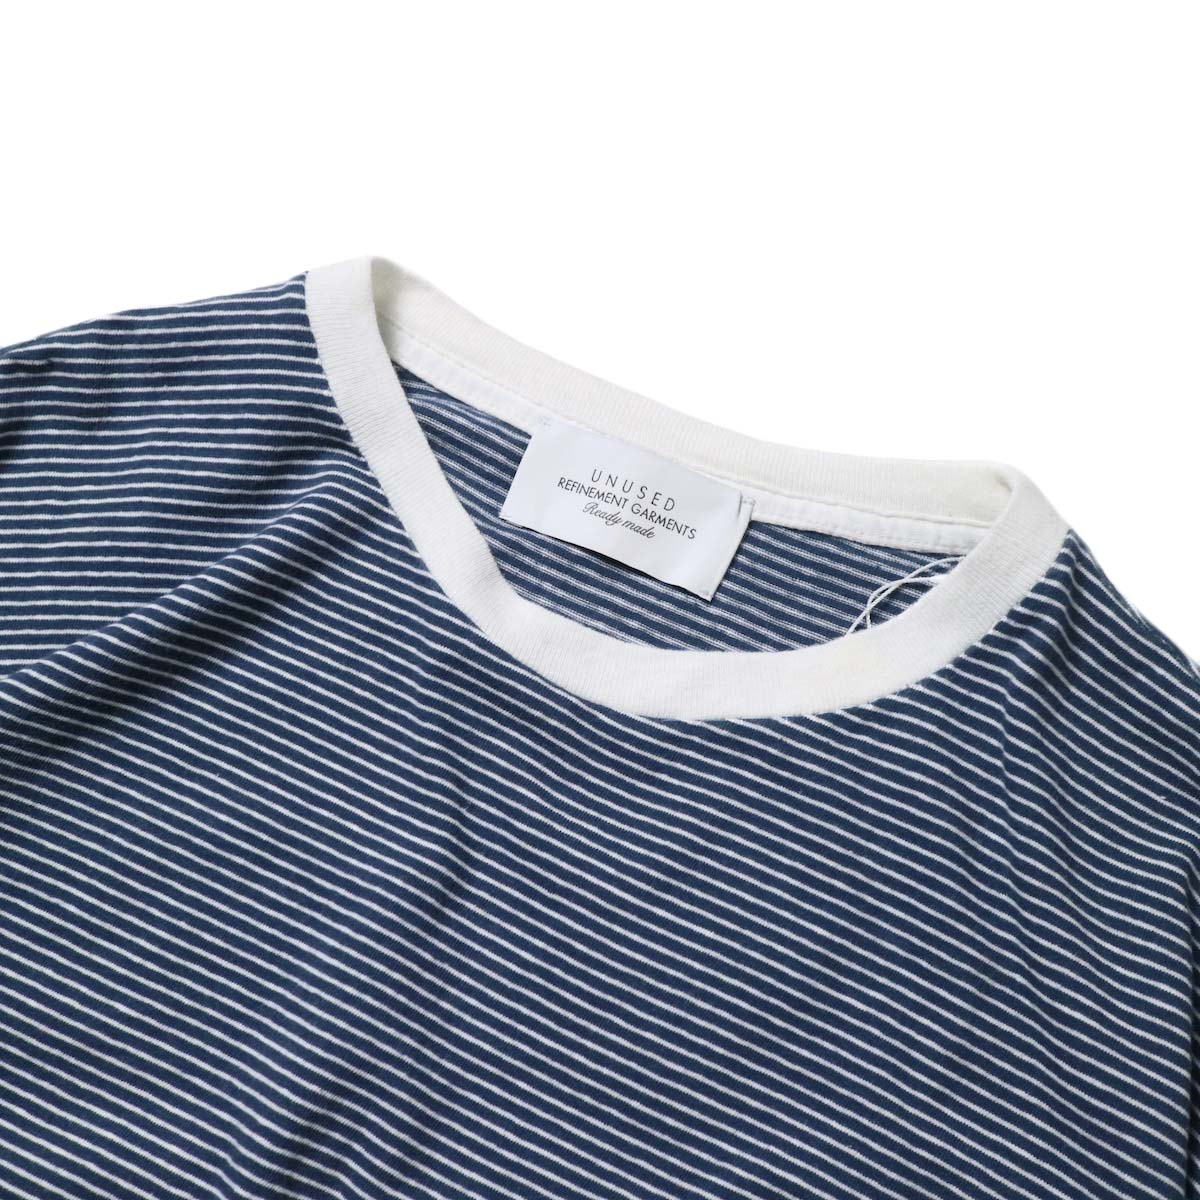 UNUSED / US1963 Short sleeve border t-shirt. (Navy × White)ネック